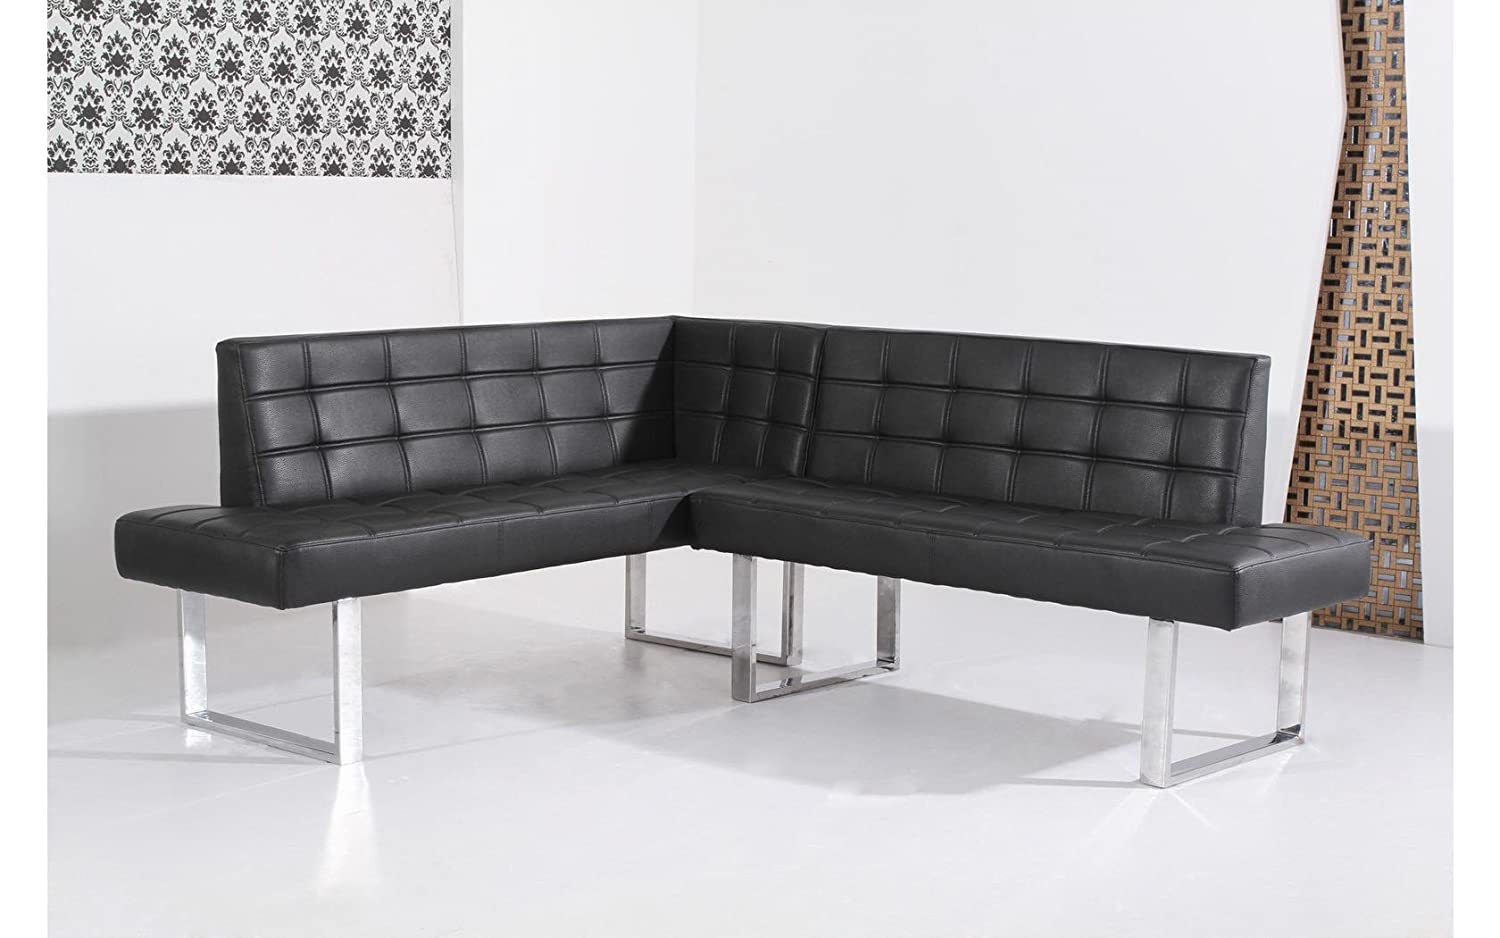 stunning banquette angle droit coinrepas cuir synthtique. Black Bedroom Furniture Sets. Home Design Ideas